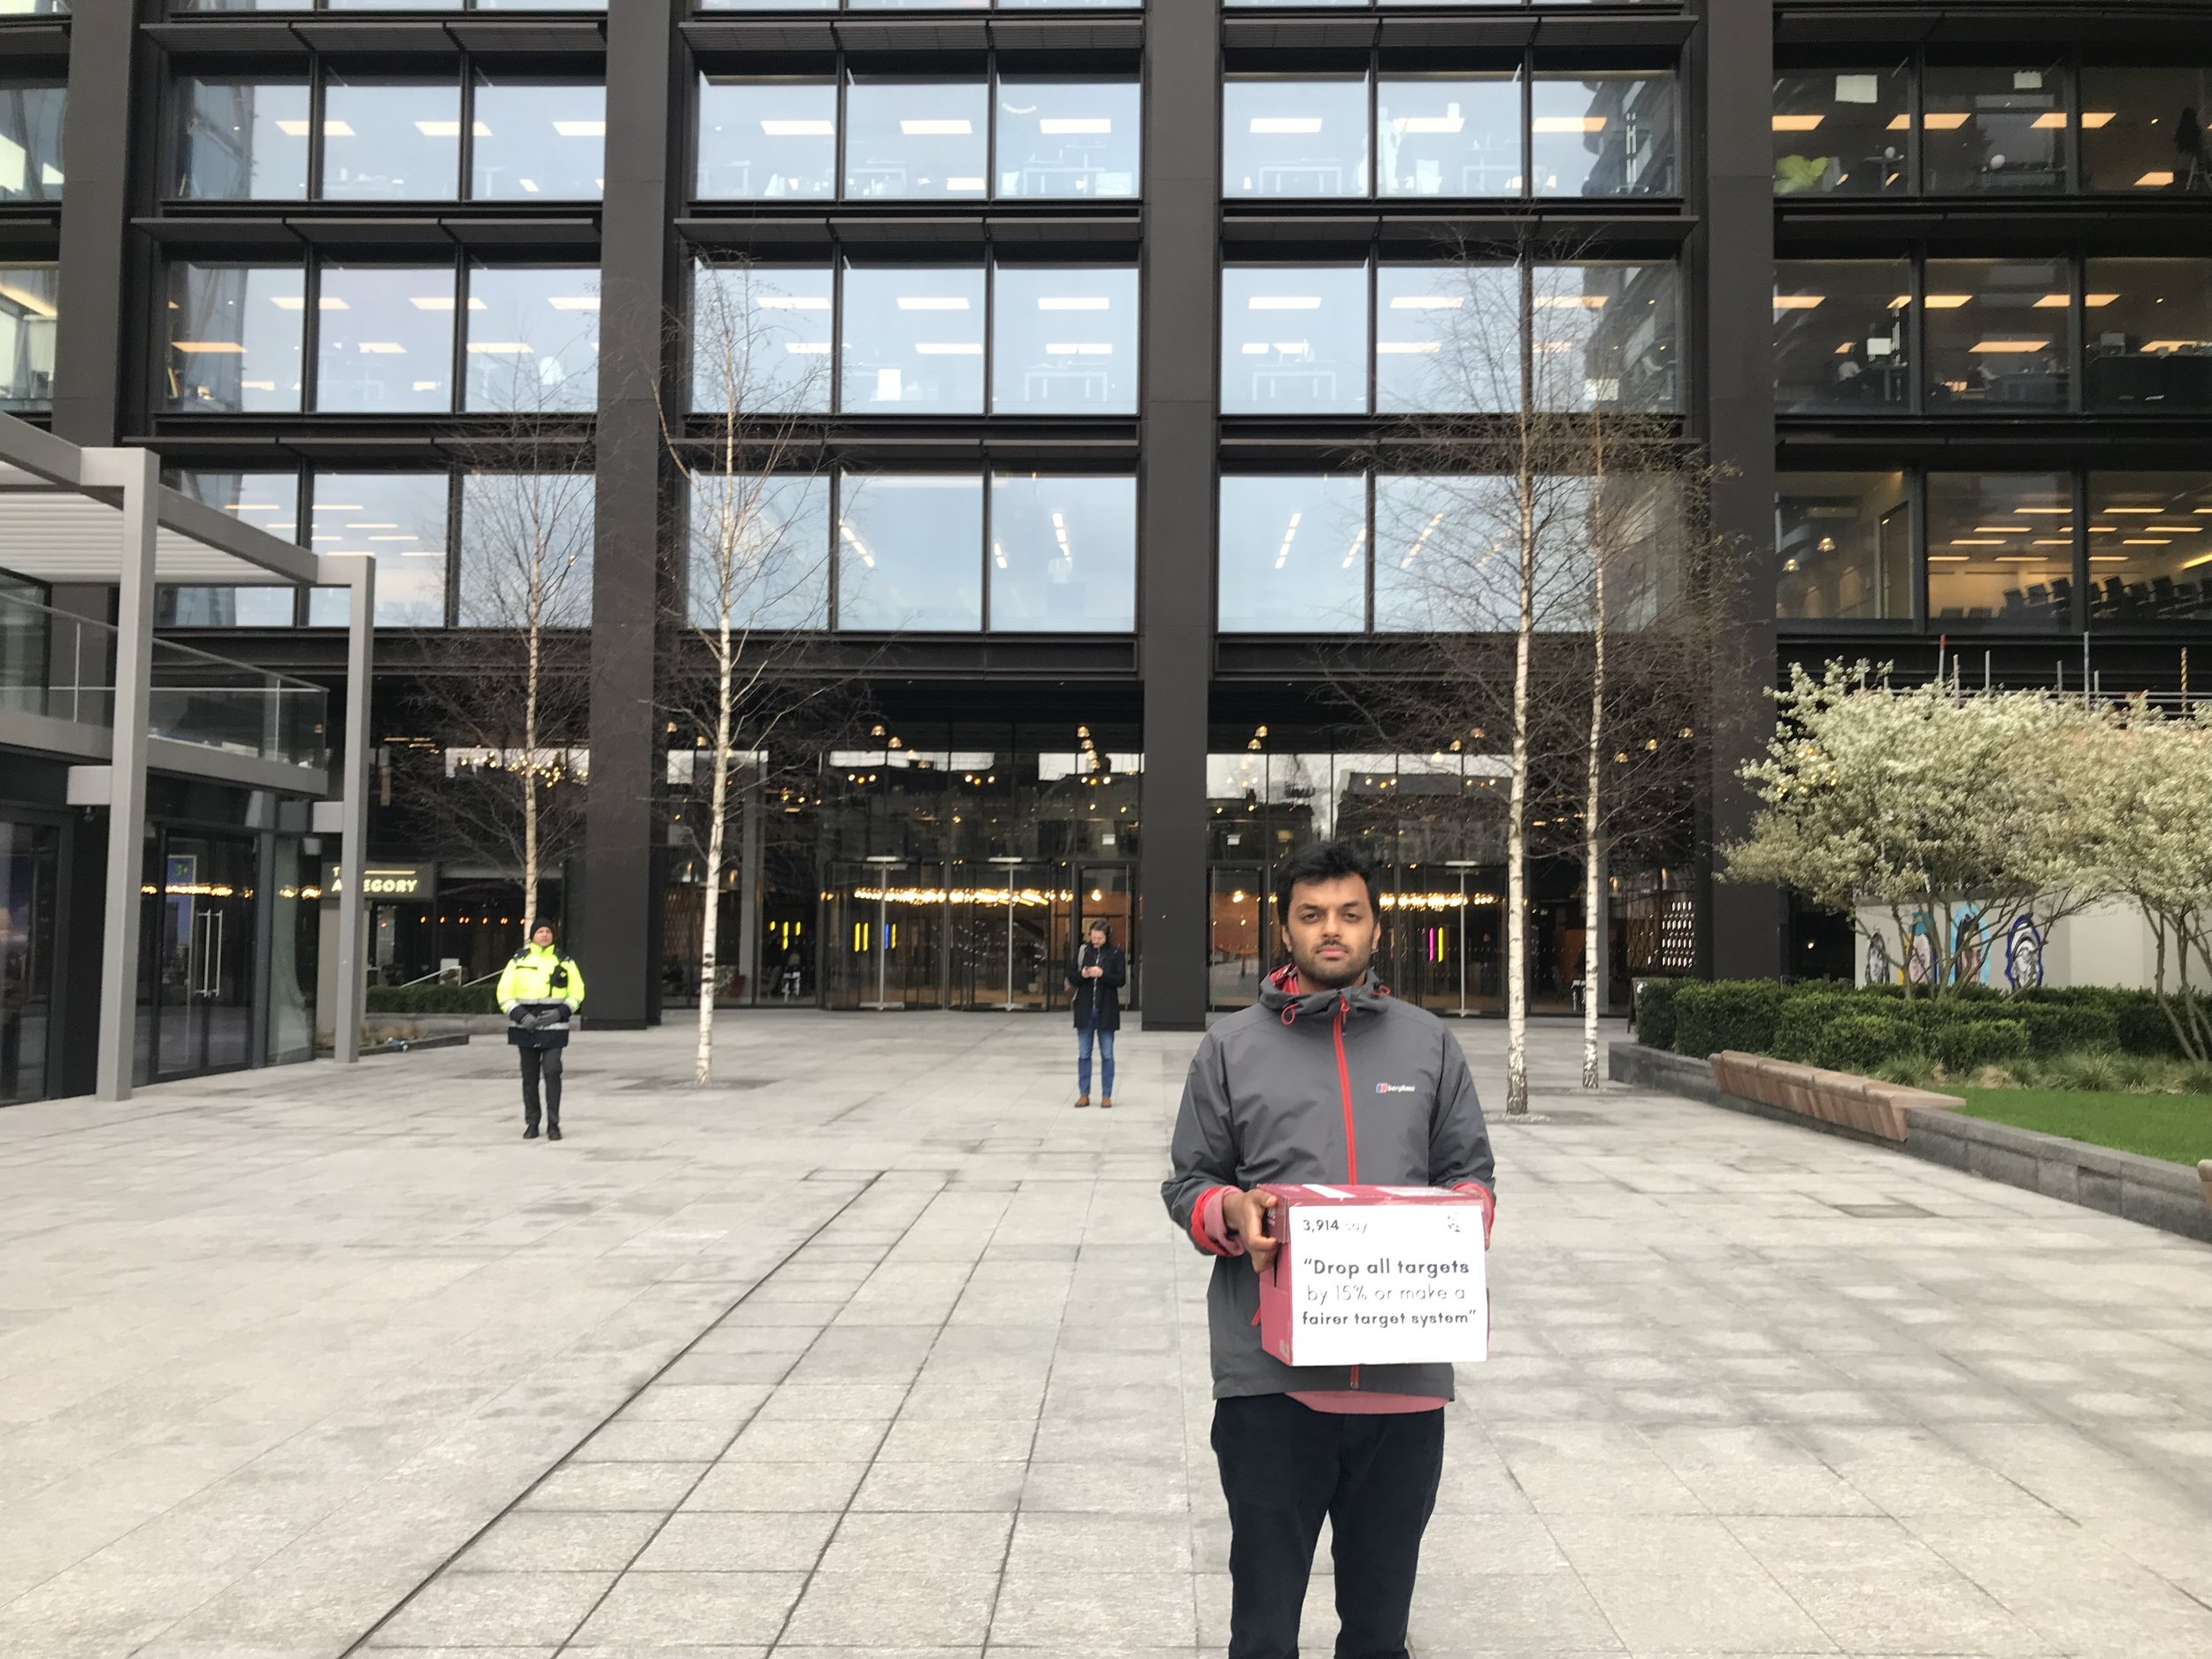 Delivering the petition to Amazon HQ